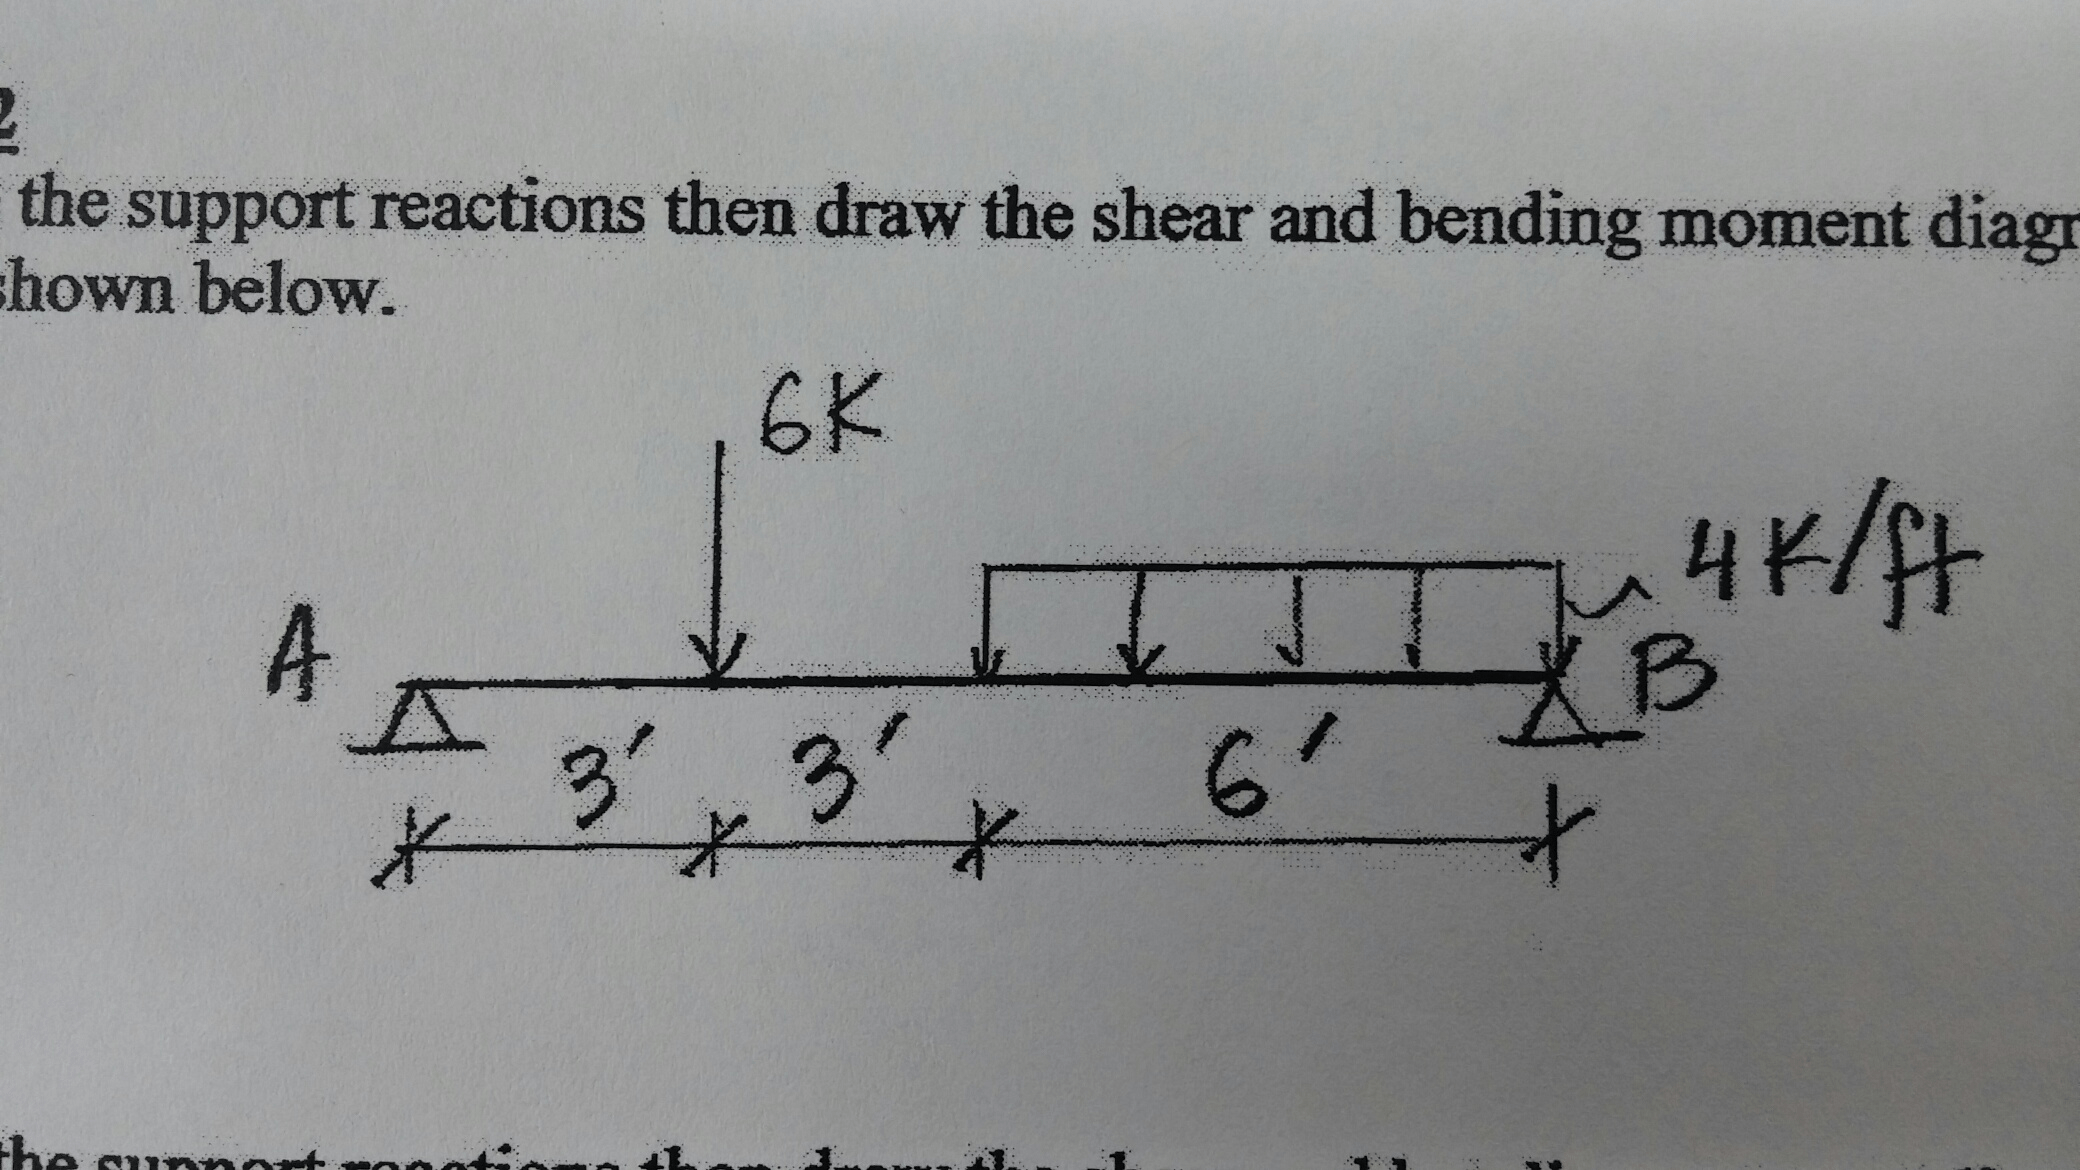 how to draw shear and bending moment diagrams 240sx wiring diagram stereo determine the support reactions then drawthe